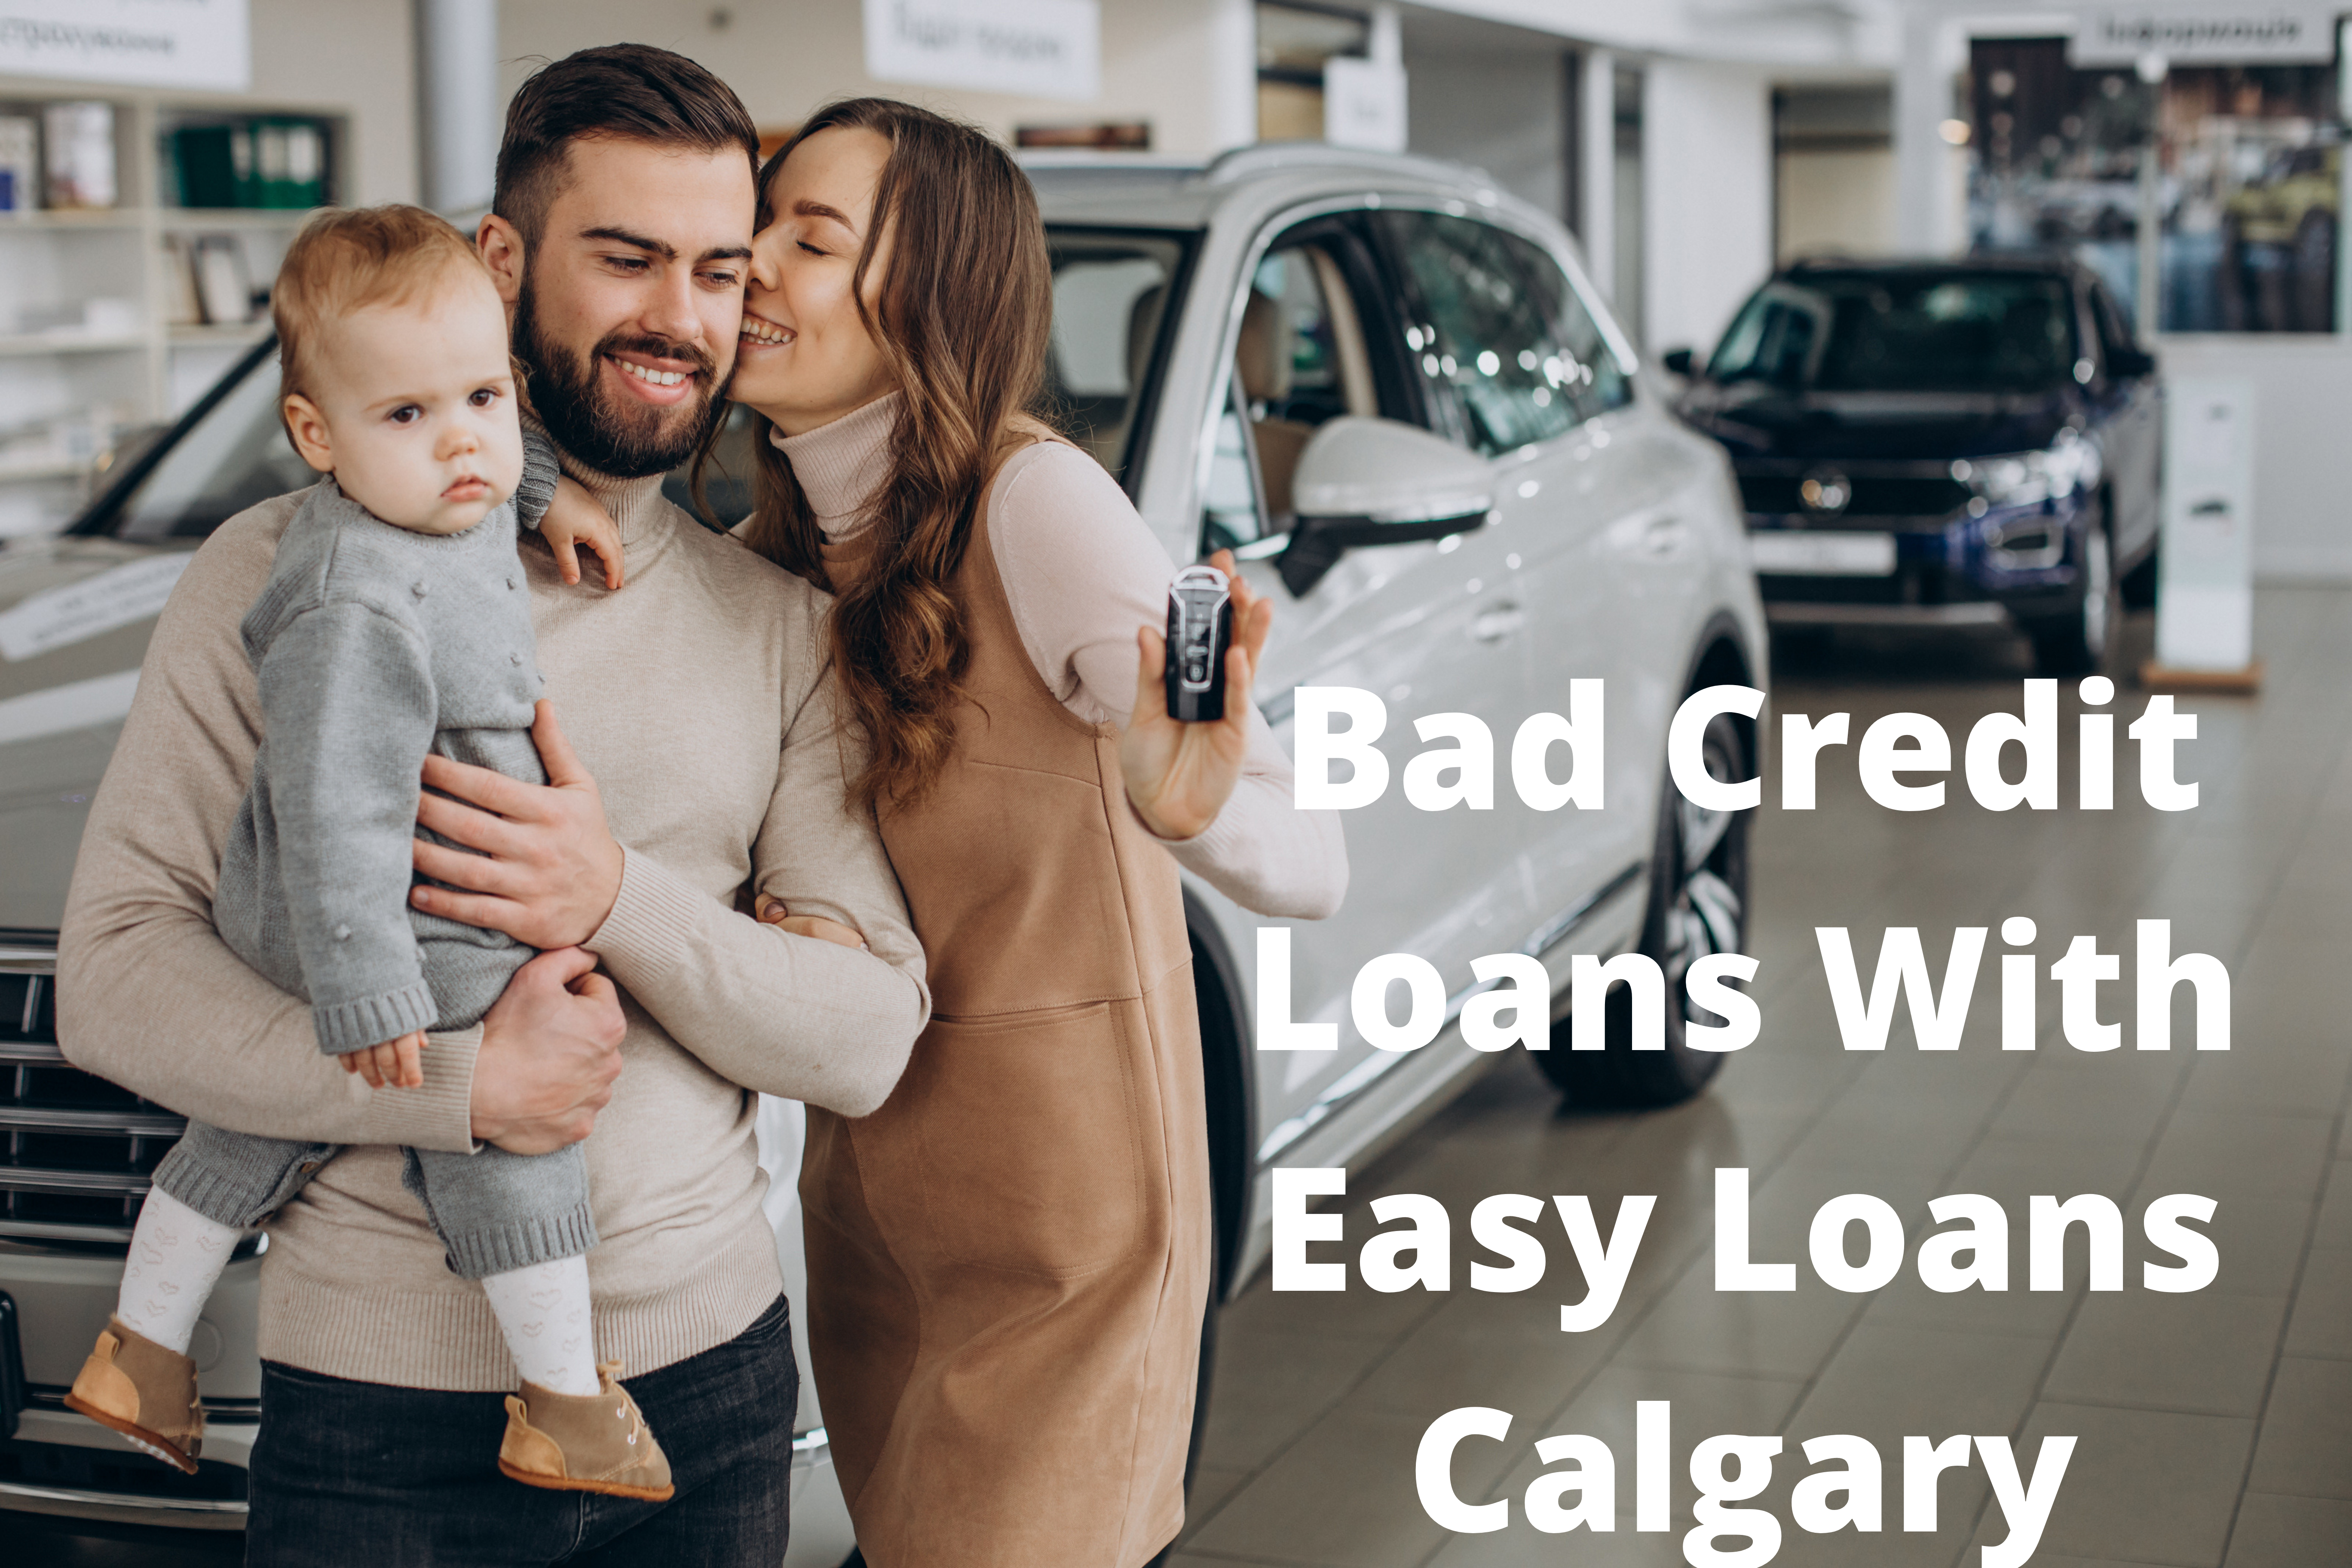 Get Bad Credit Loans With Easy Loans Calgary.